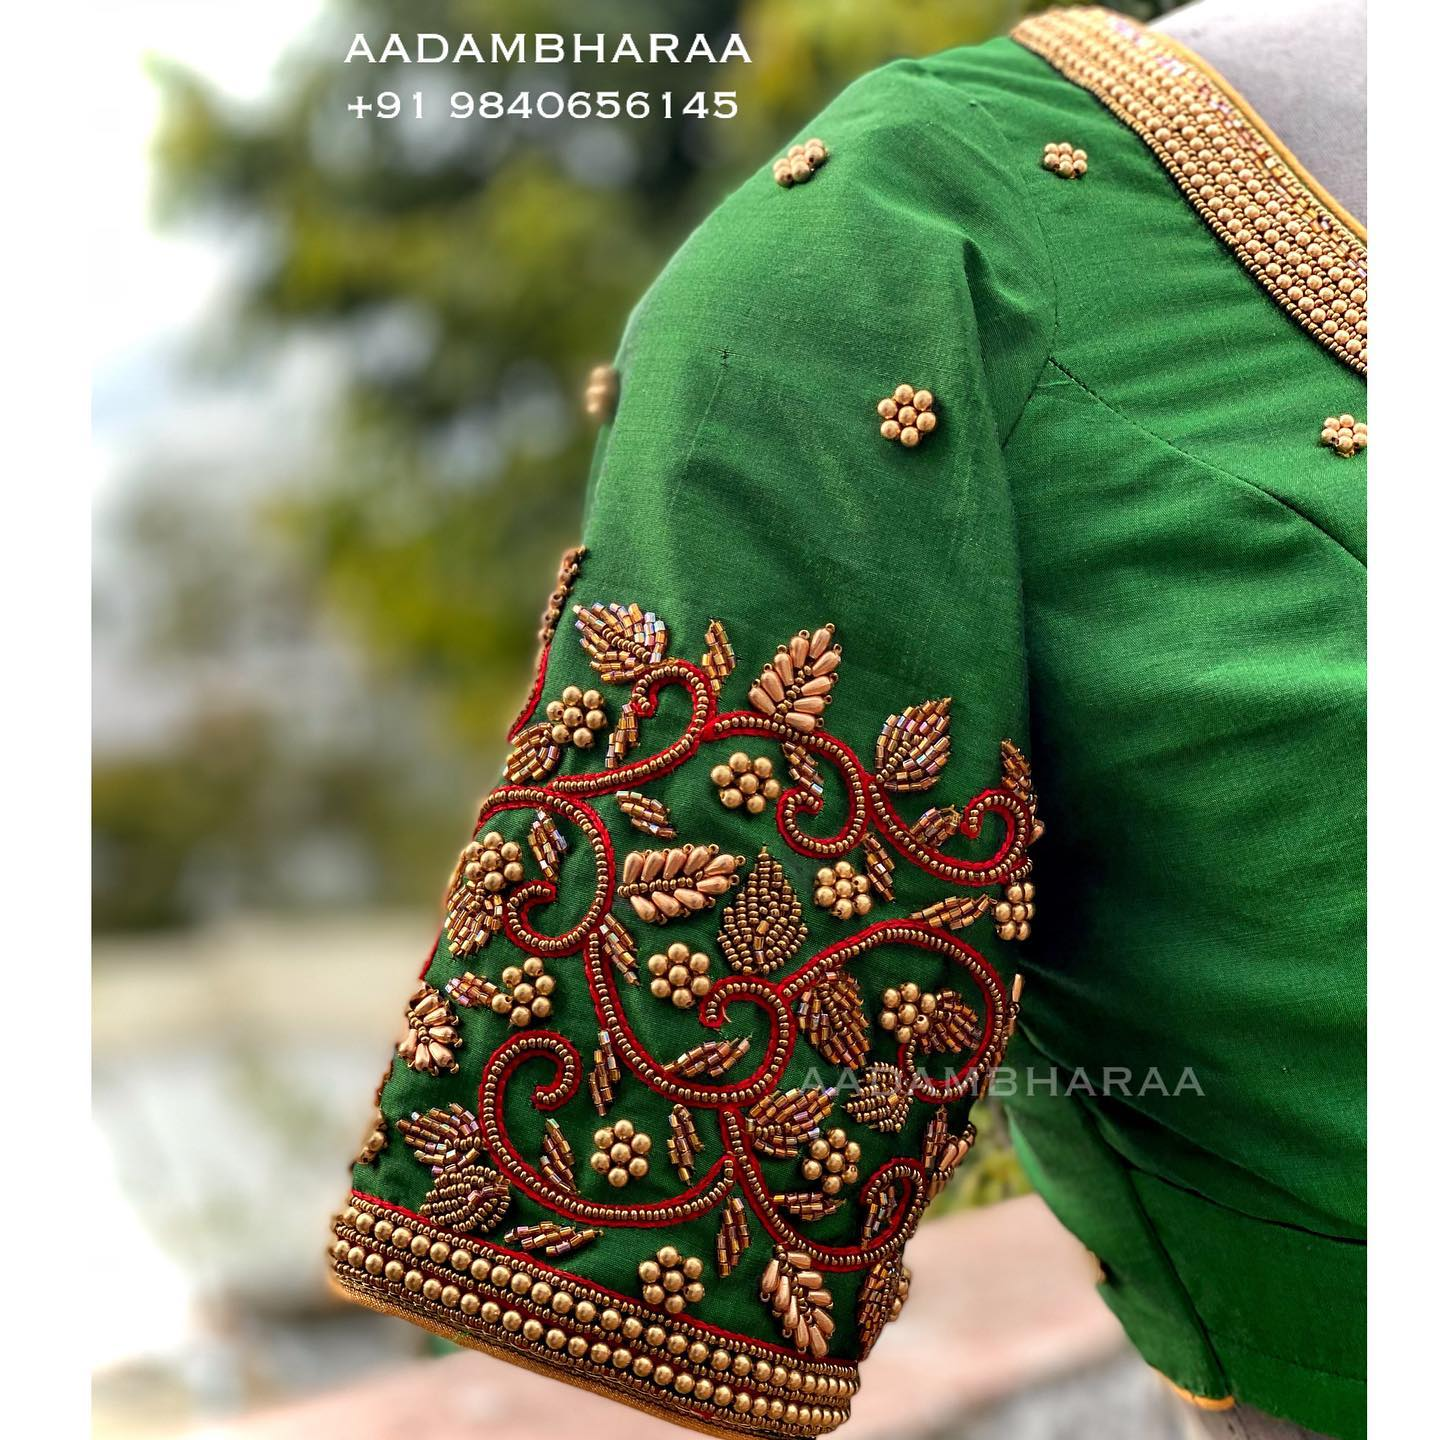 Gorgeous green color bridal blouse with floral and creeper design hand embroidery bead aari work on sleeves and neckline.  Here is an exclusive hand worked blouse by Aadambharaa that is a melange of simplicity and sophistication.